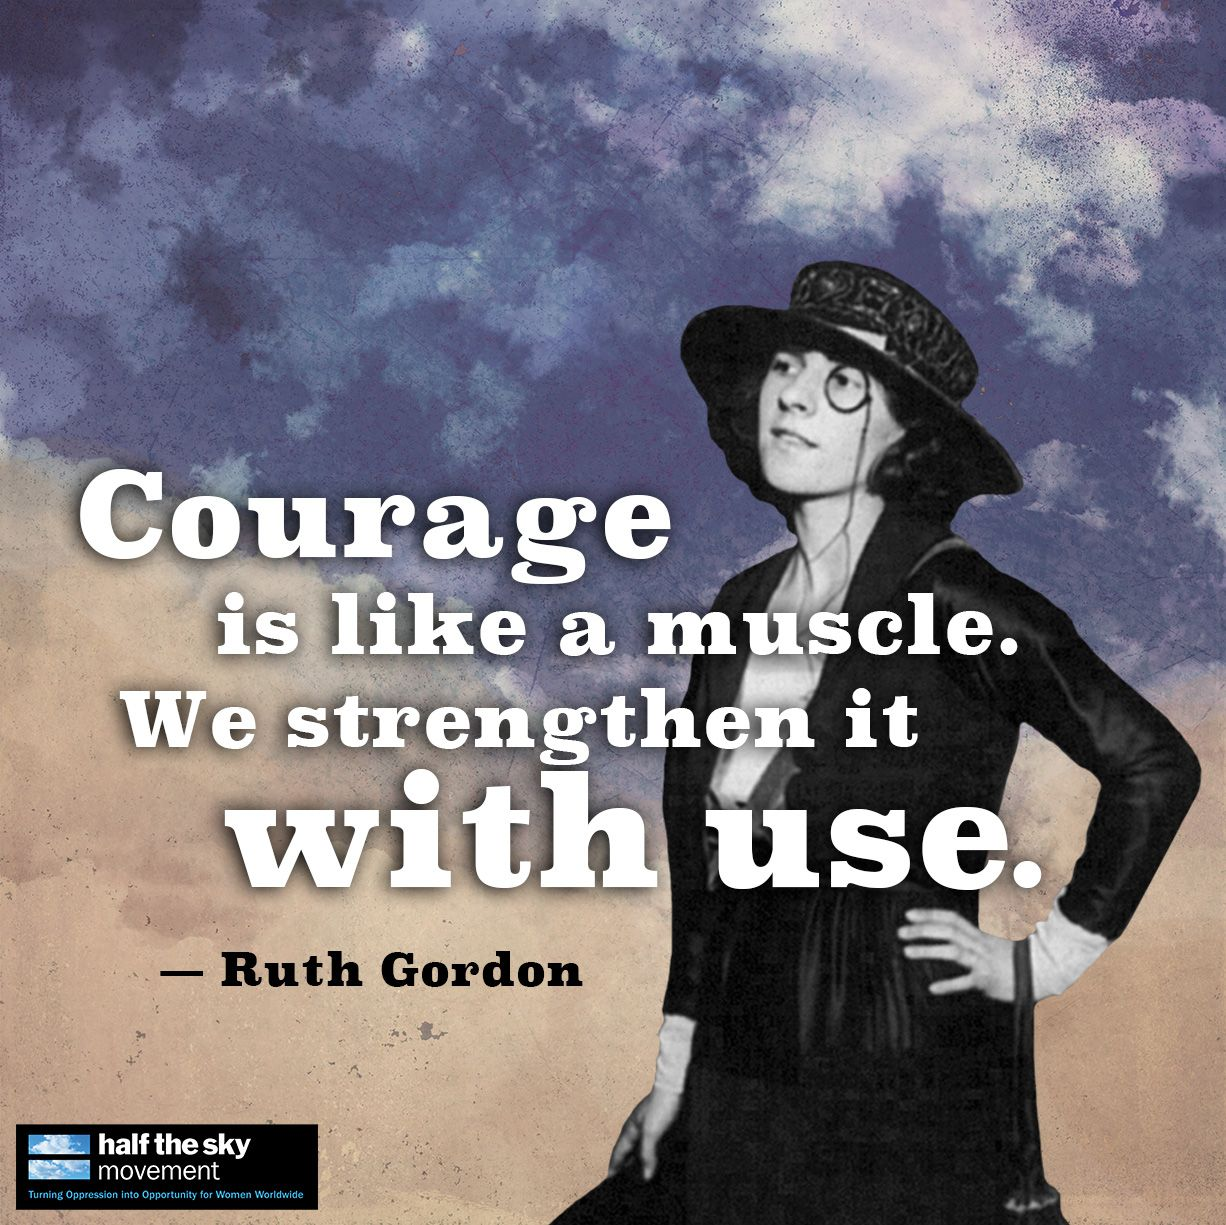 Inspiring words from Ruth Gordon.